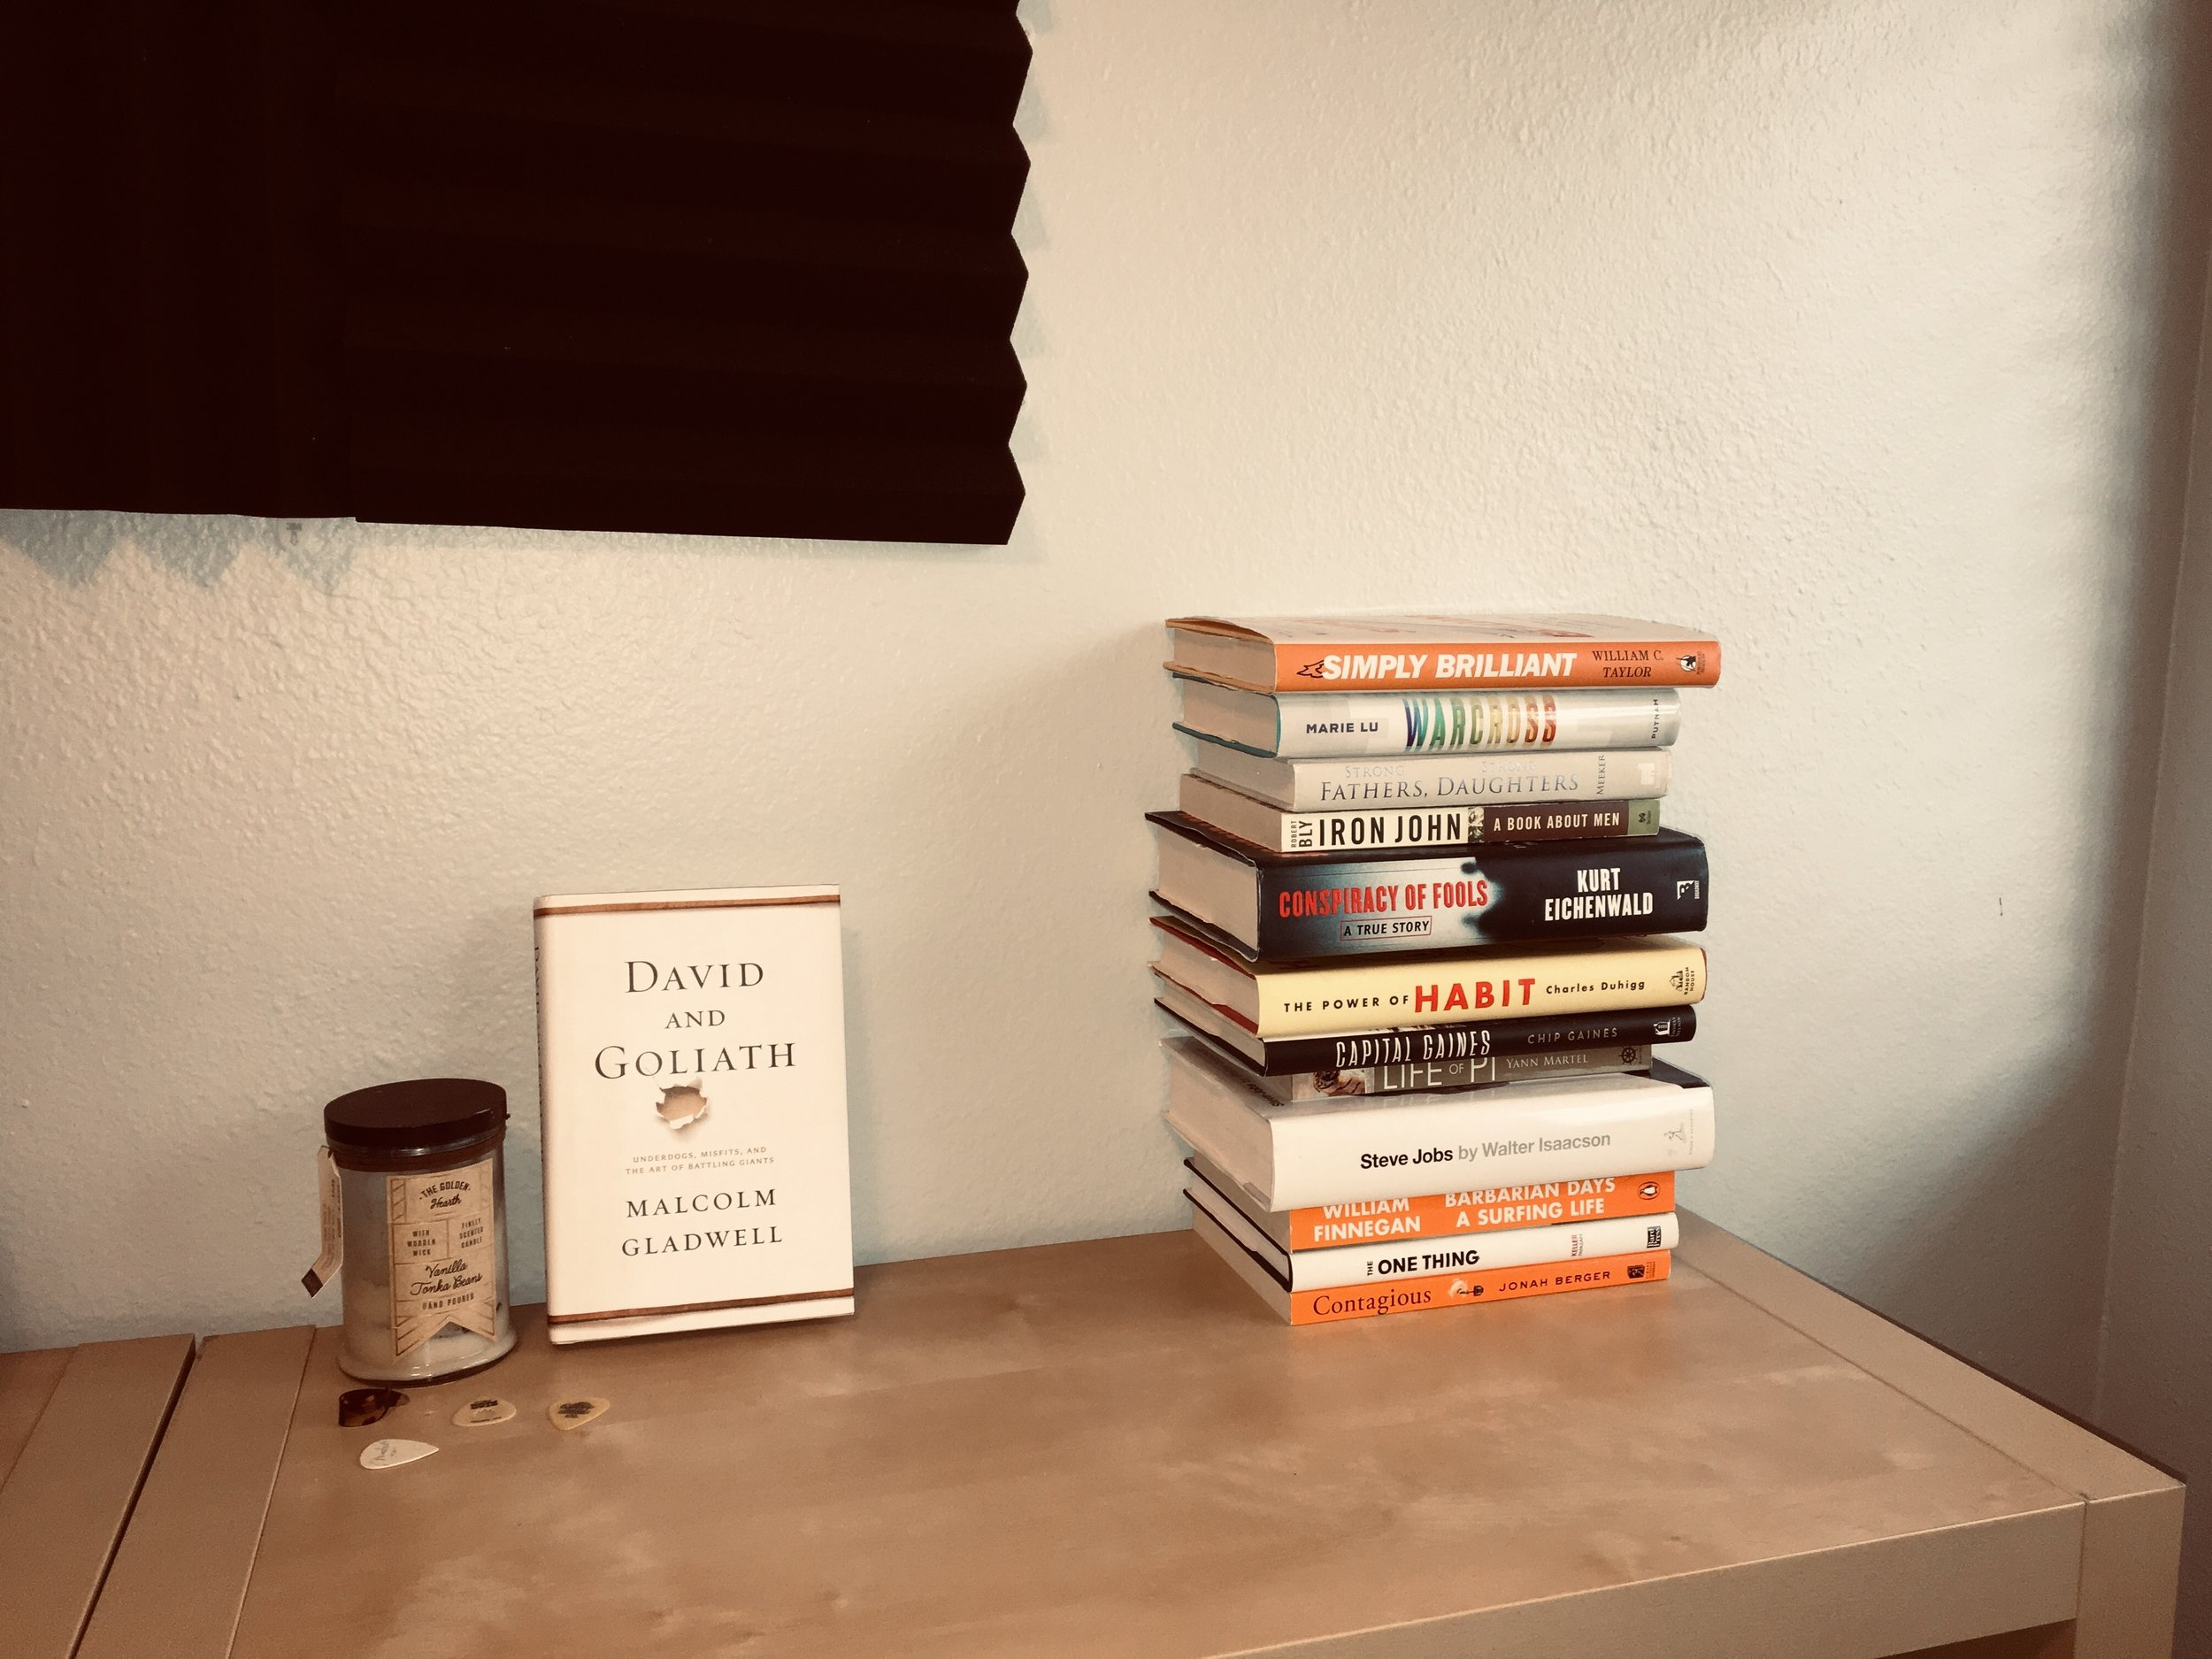 the 2018 stack, and David & Goliath by Malcolm Gladwell